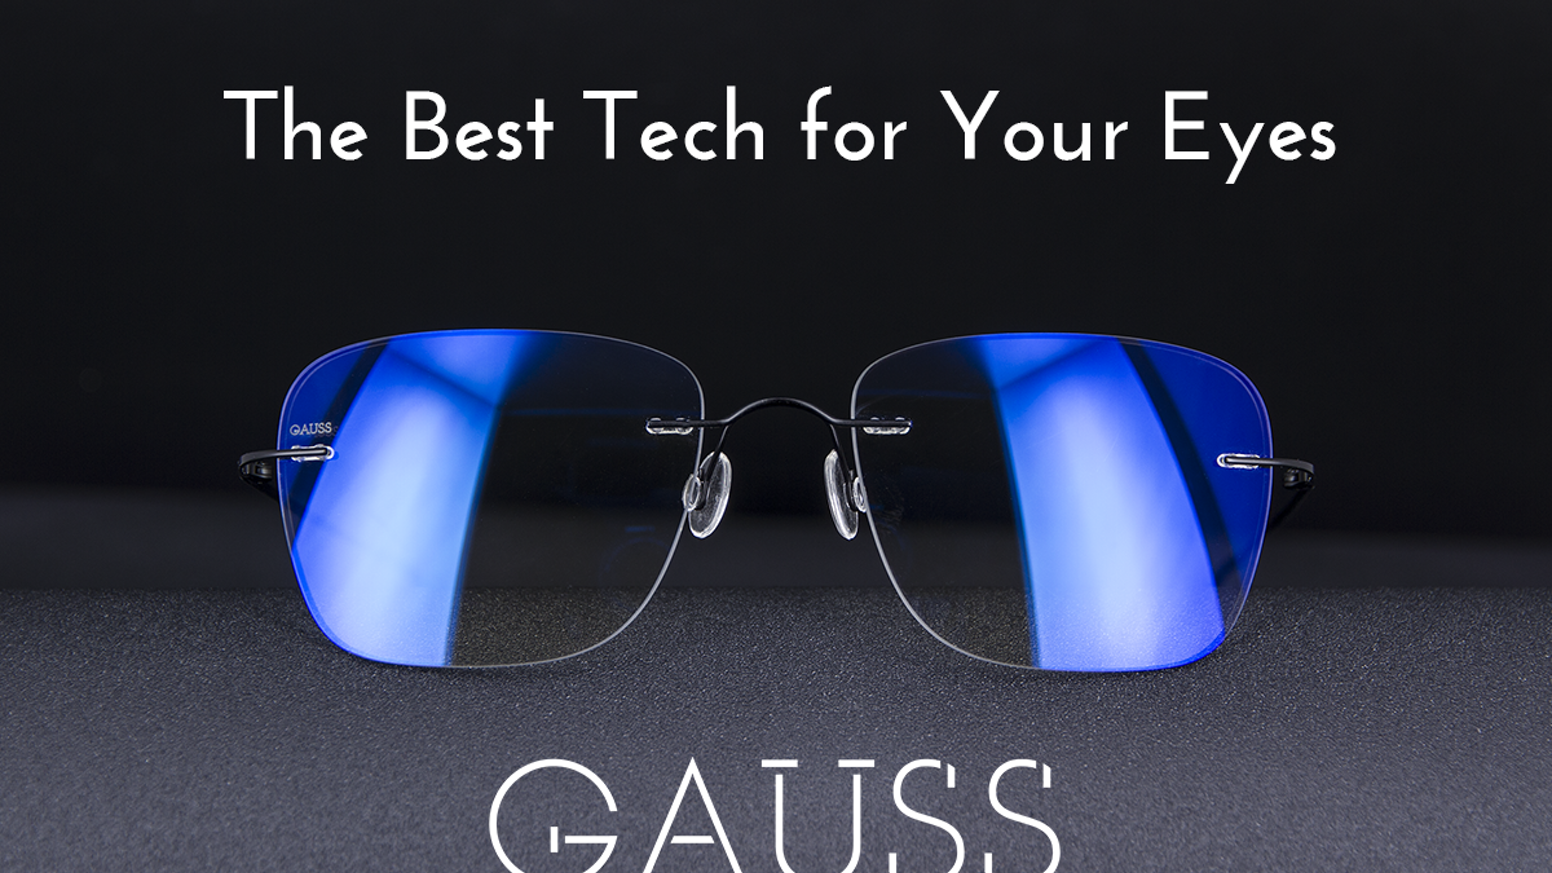 Gauss glasses protect your eyes in front of screens and outside with self-tinting lenses and a new, proprietary coating technology.